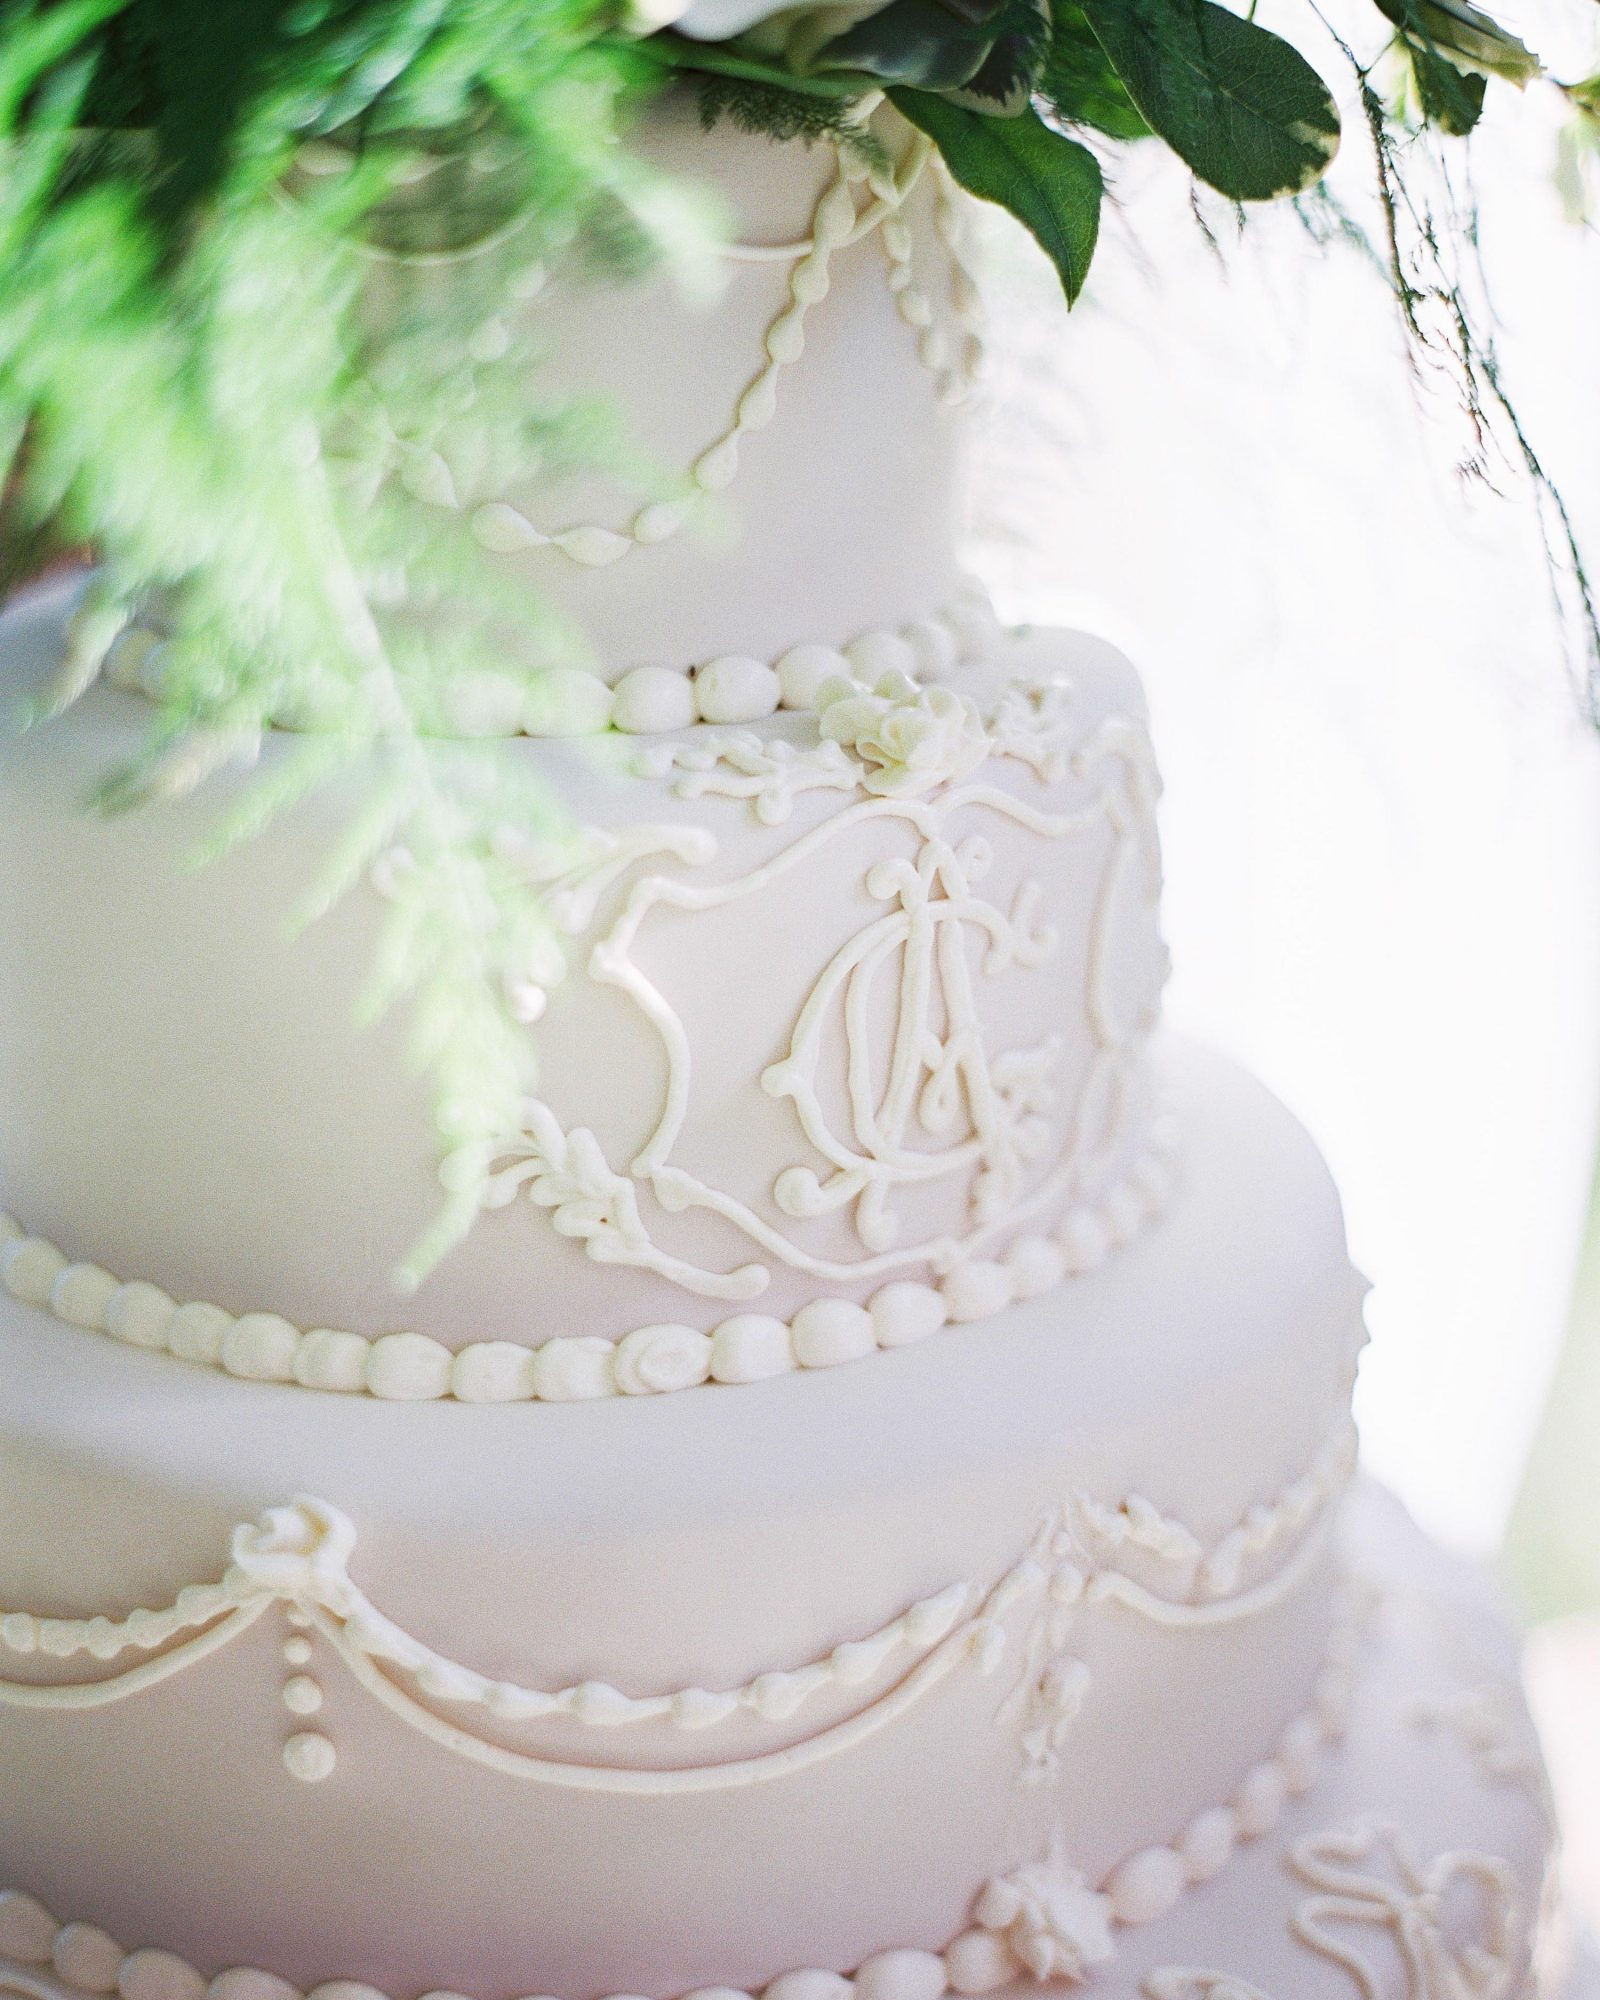 amy-garrison-wedding-cake-00718-6134266-0816.jpg